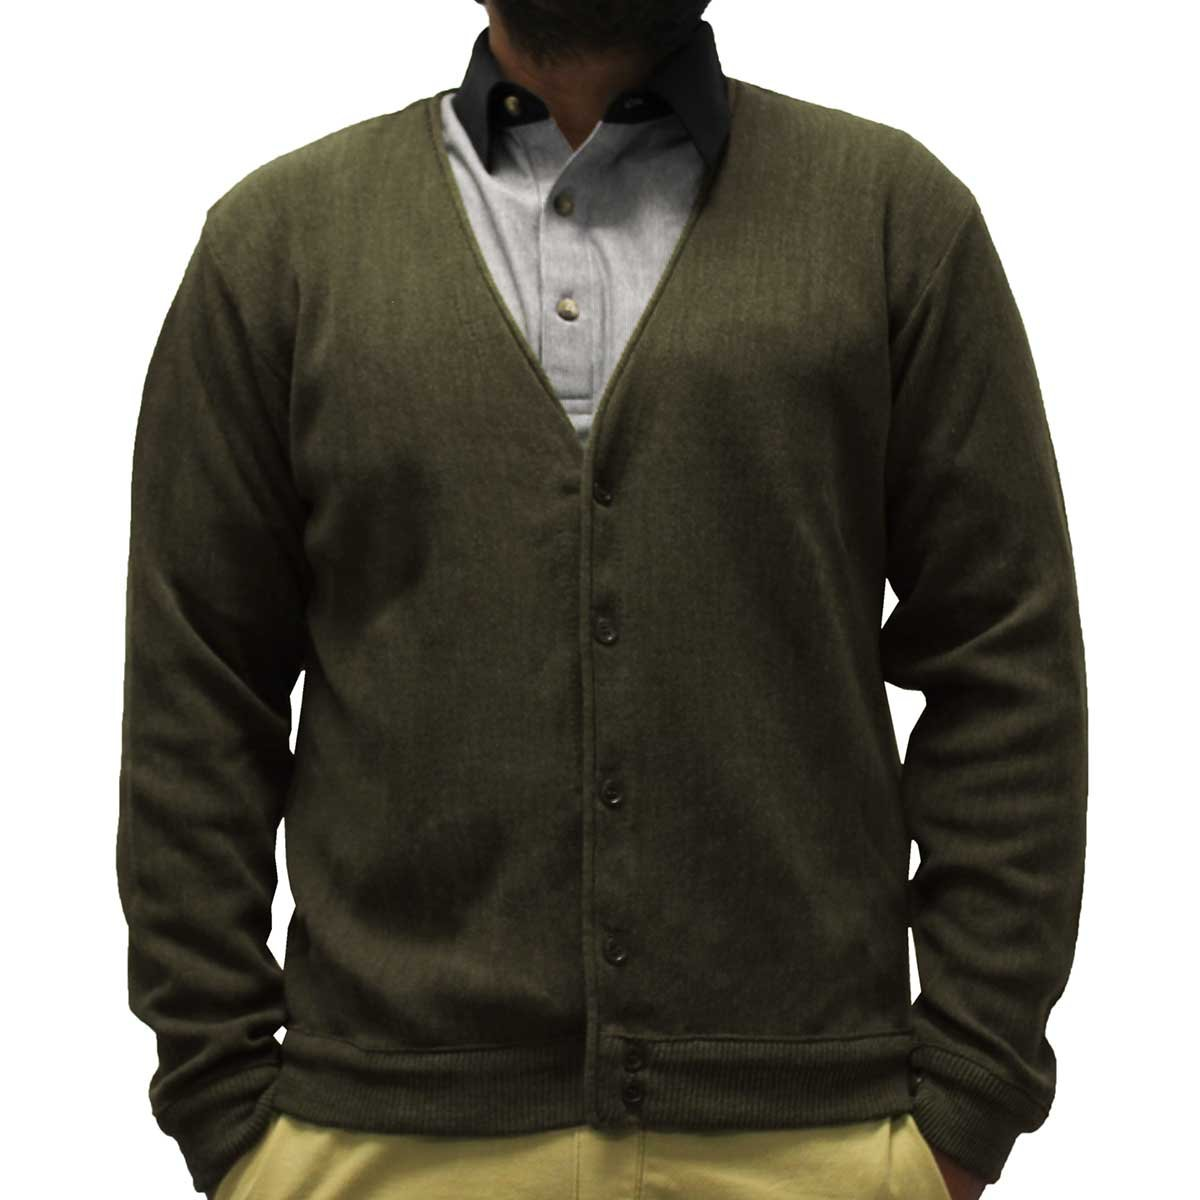 Classics By Palmland Men's L/S Links Cardigan Sweater 4000-37